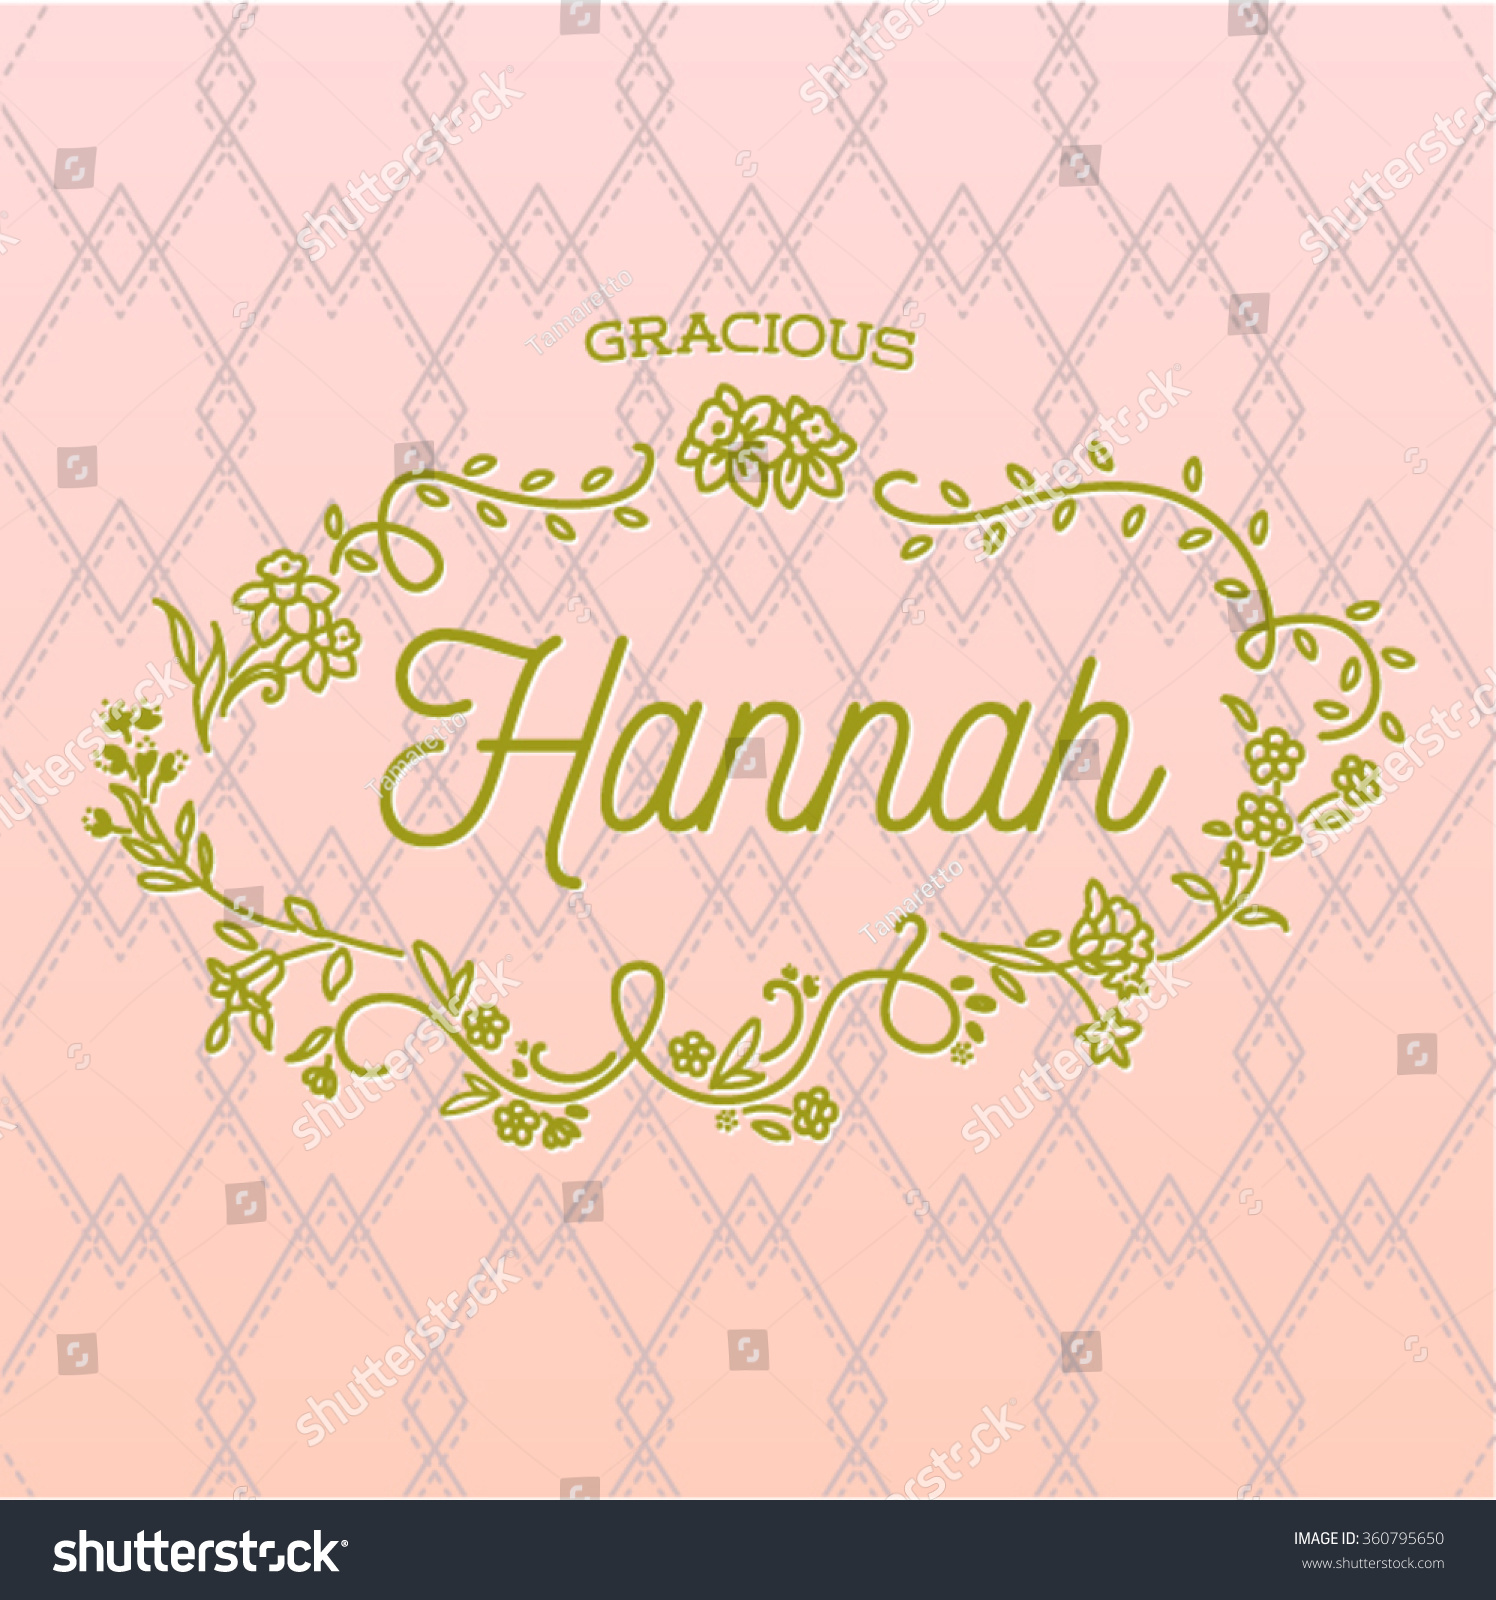 name hannah typography design with floral frame on